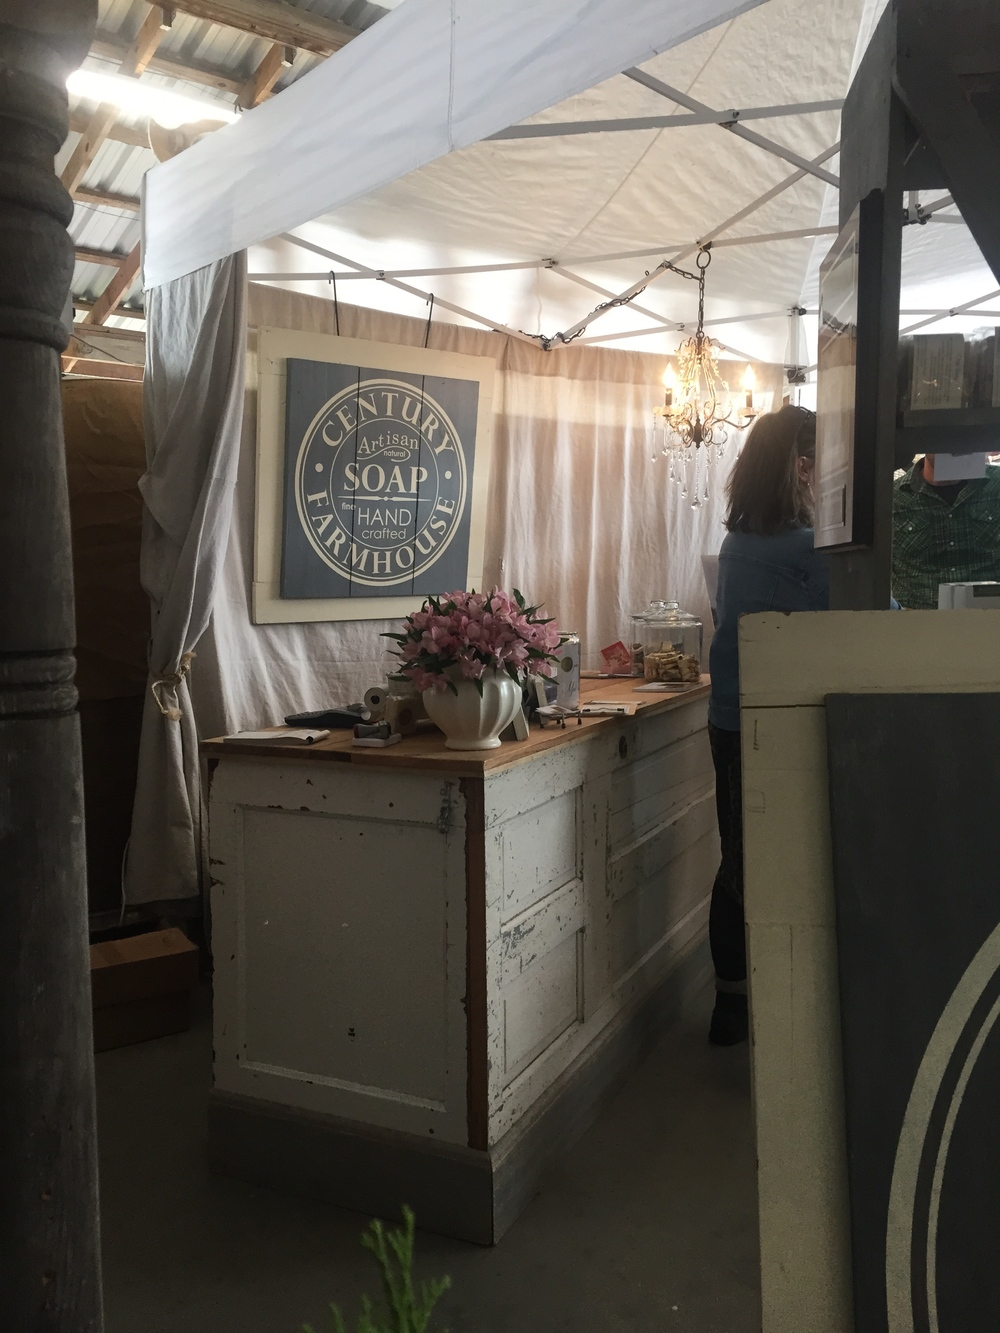 This booth's register/counter was created from old doors! The Century Farmhouse Artisan Soap Company featured lavender from farms in Washington, which I had actually visited last year!